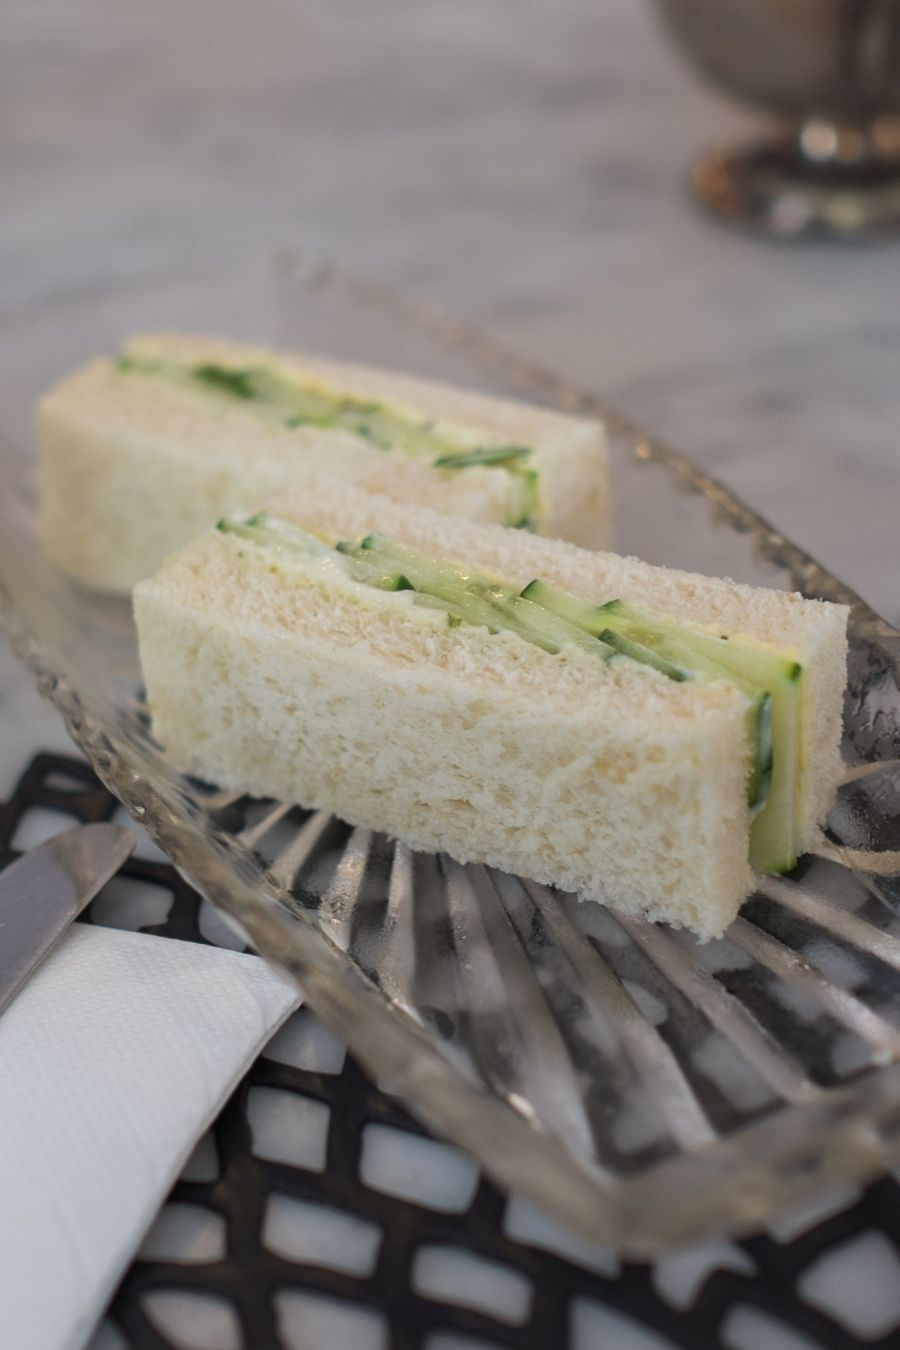 Cucumber and dill aioli sandwiches